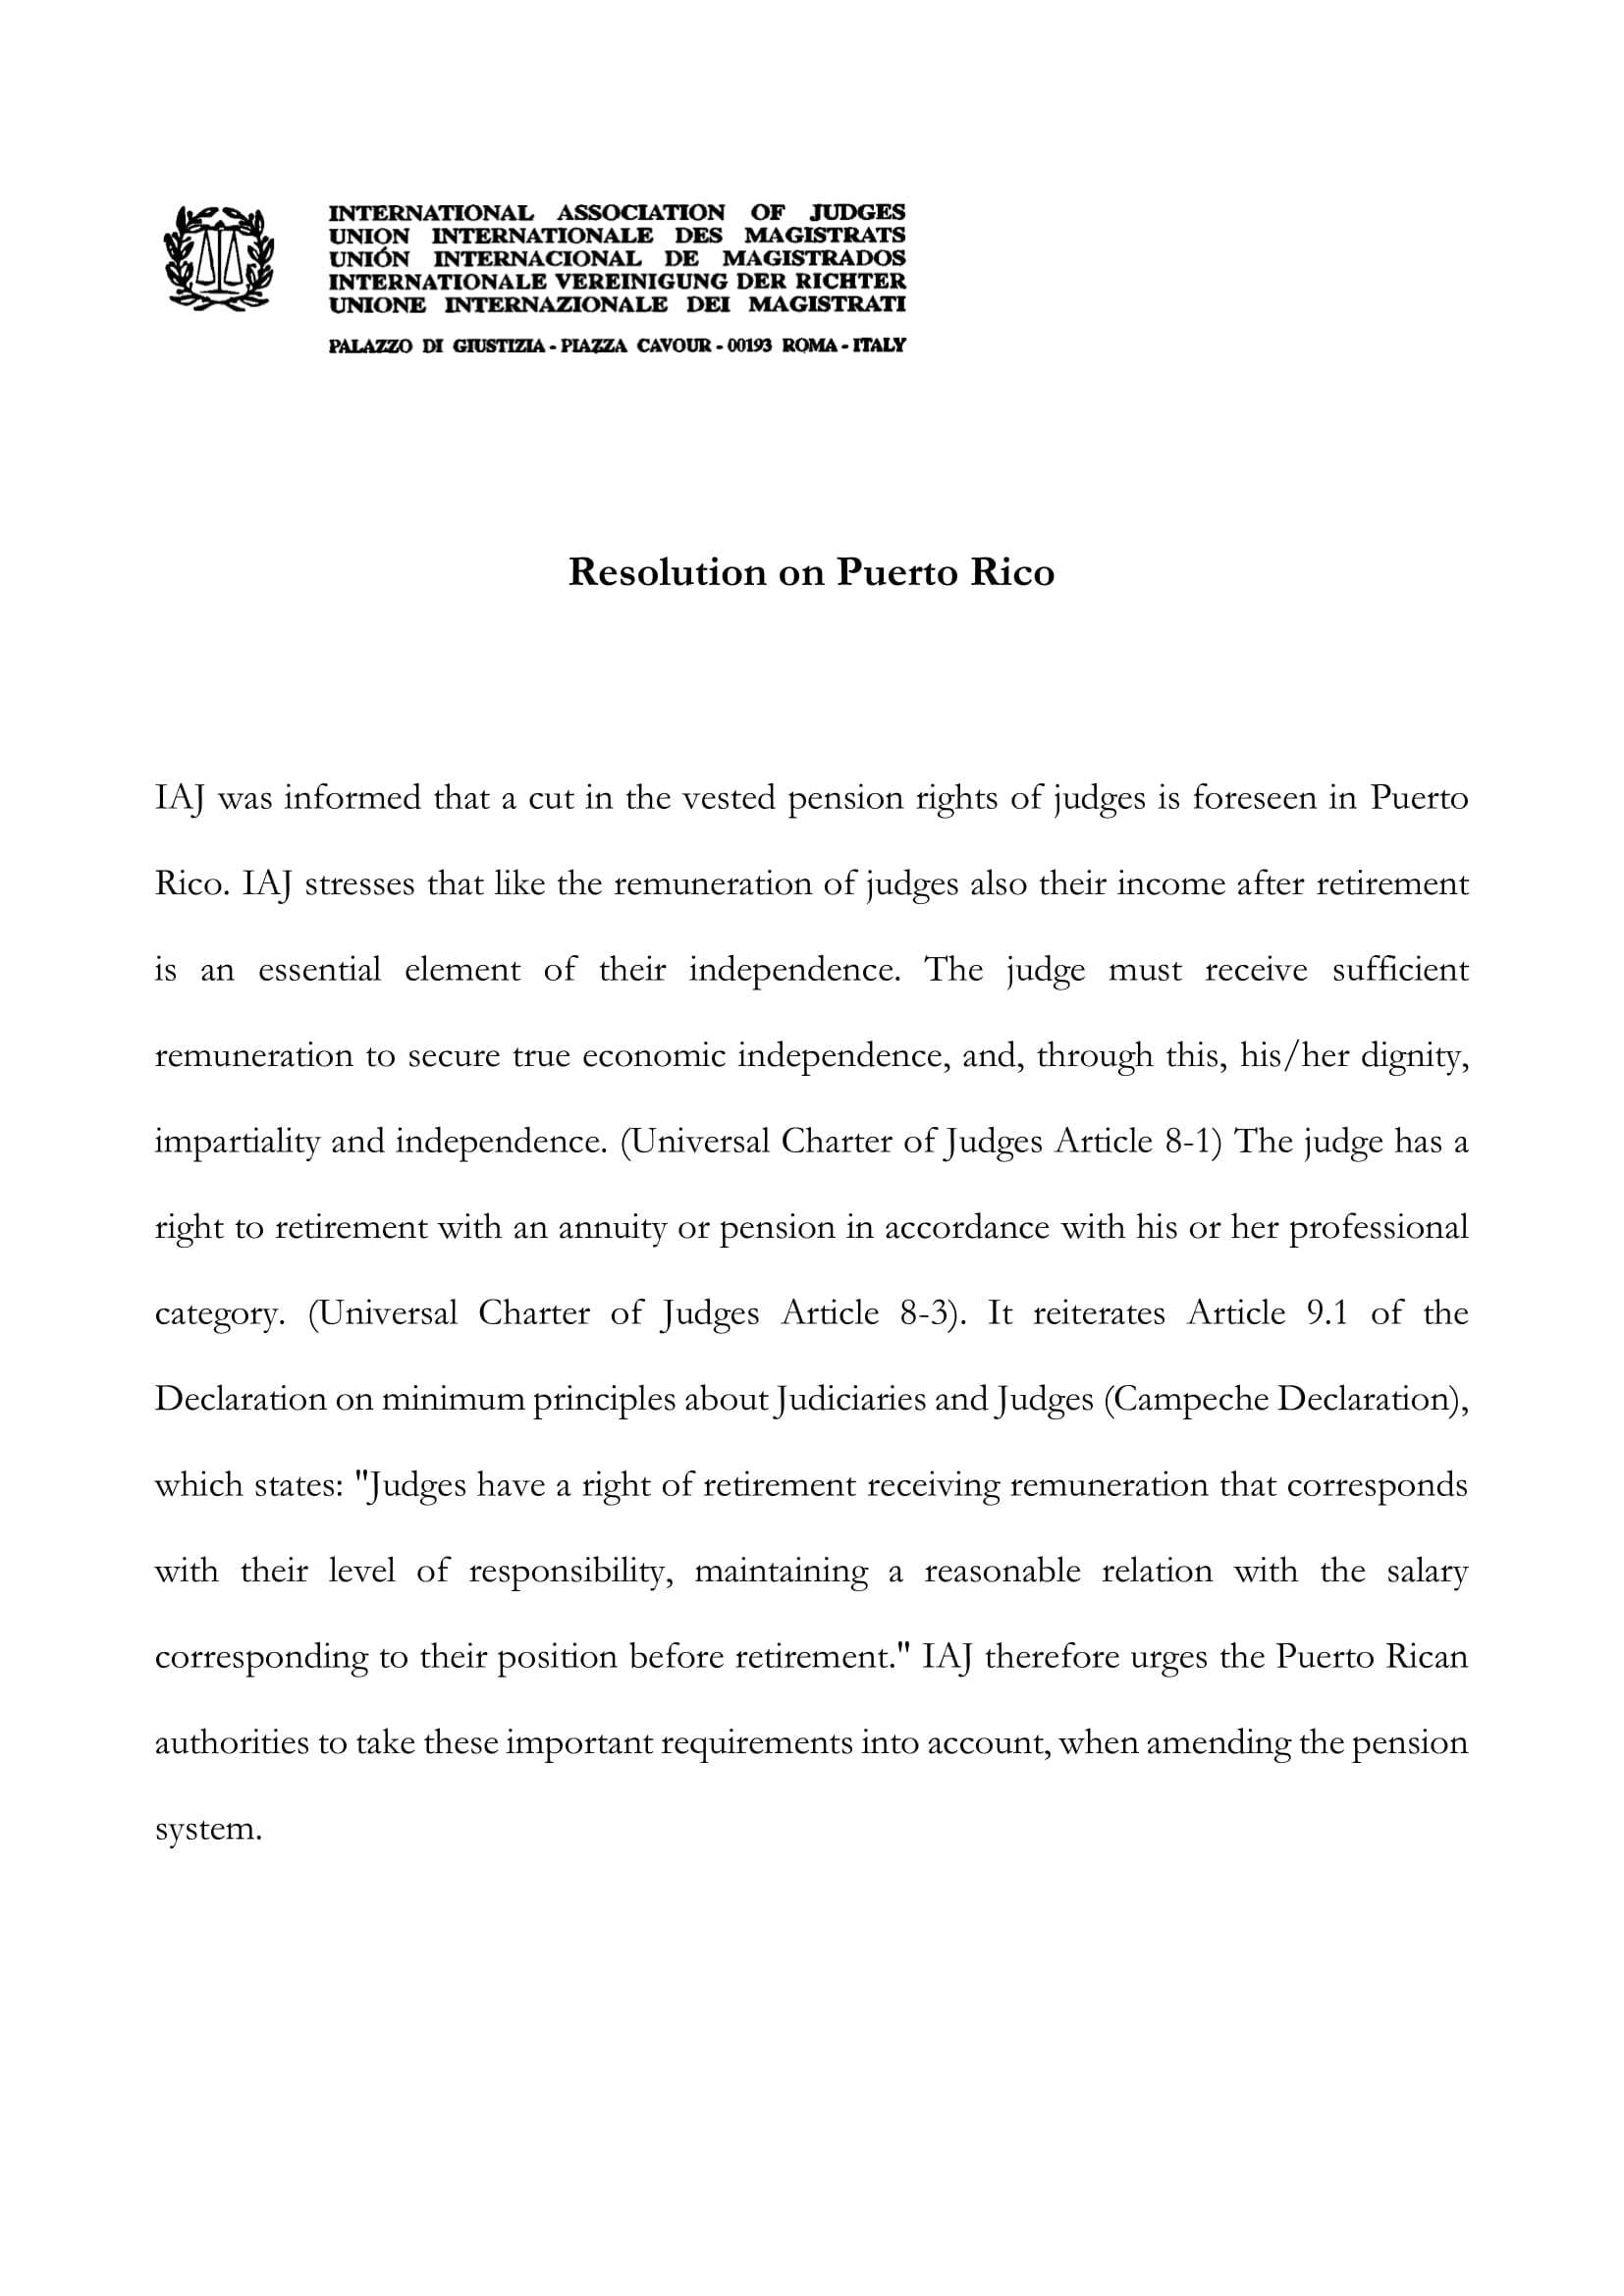 Resolution on Puerto Rico EN 1